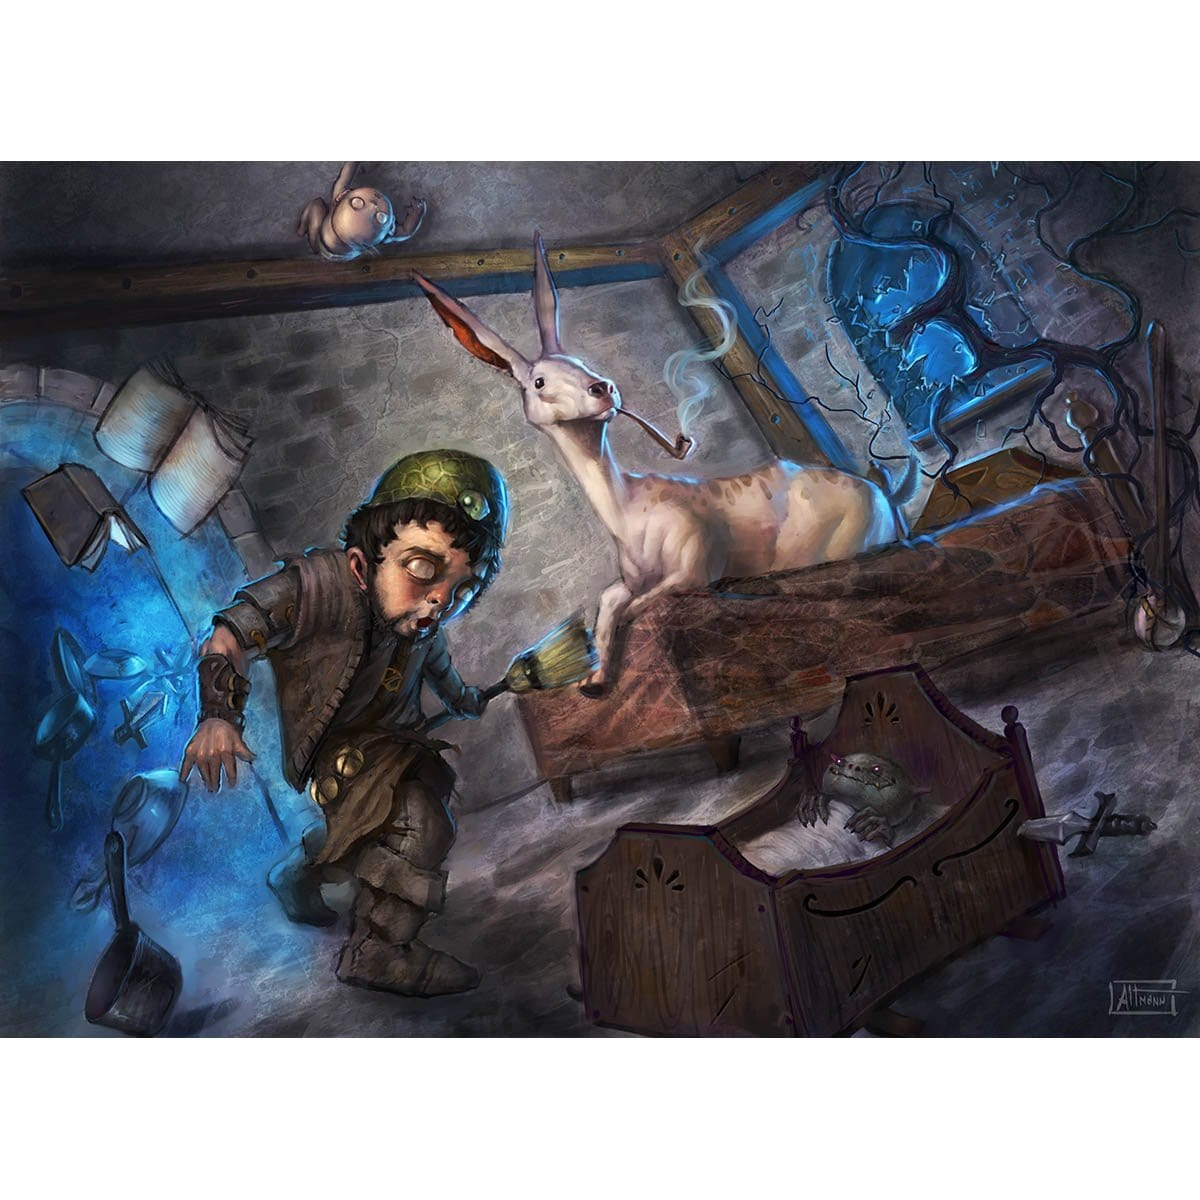 Couch's Mischief Print - Print - Original Magic Art - Accessories for Magic the Gathering and other card games